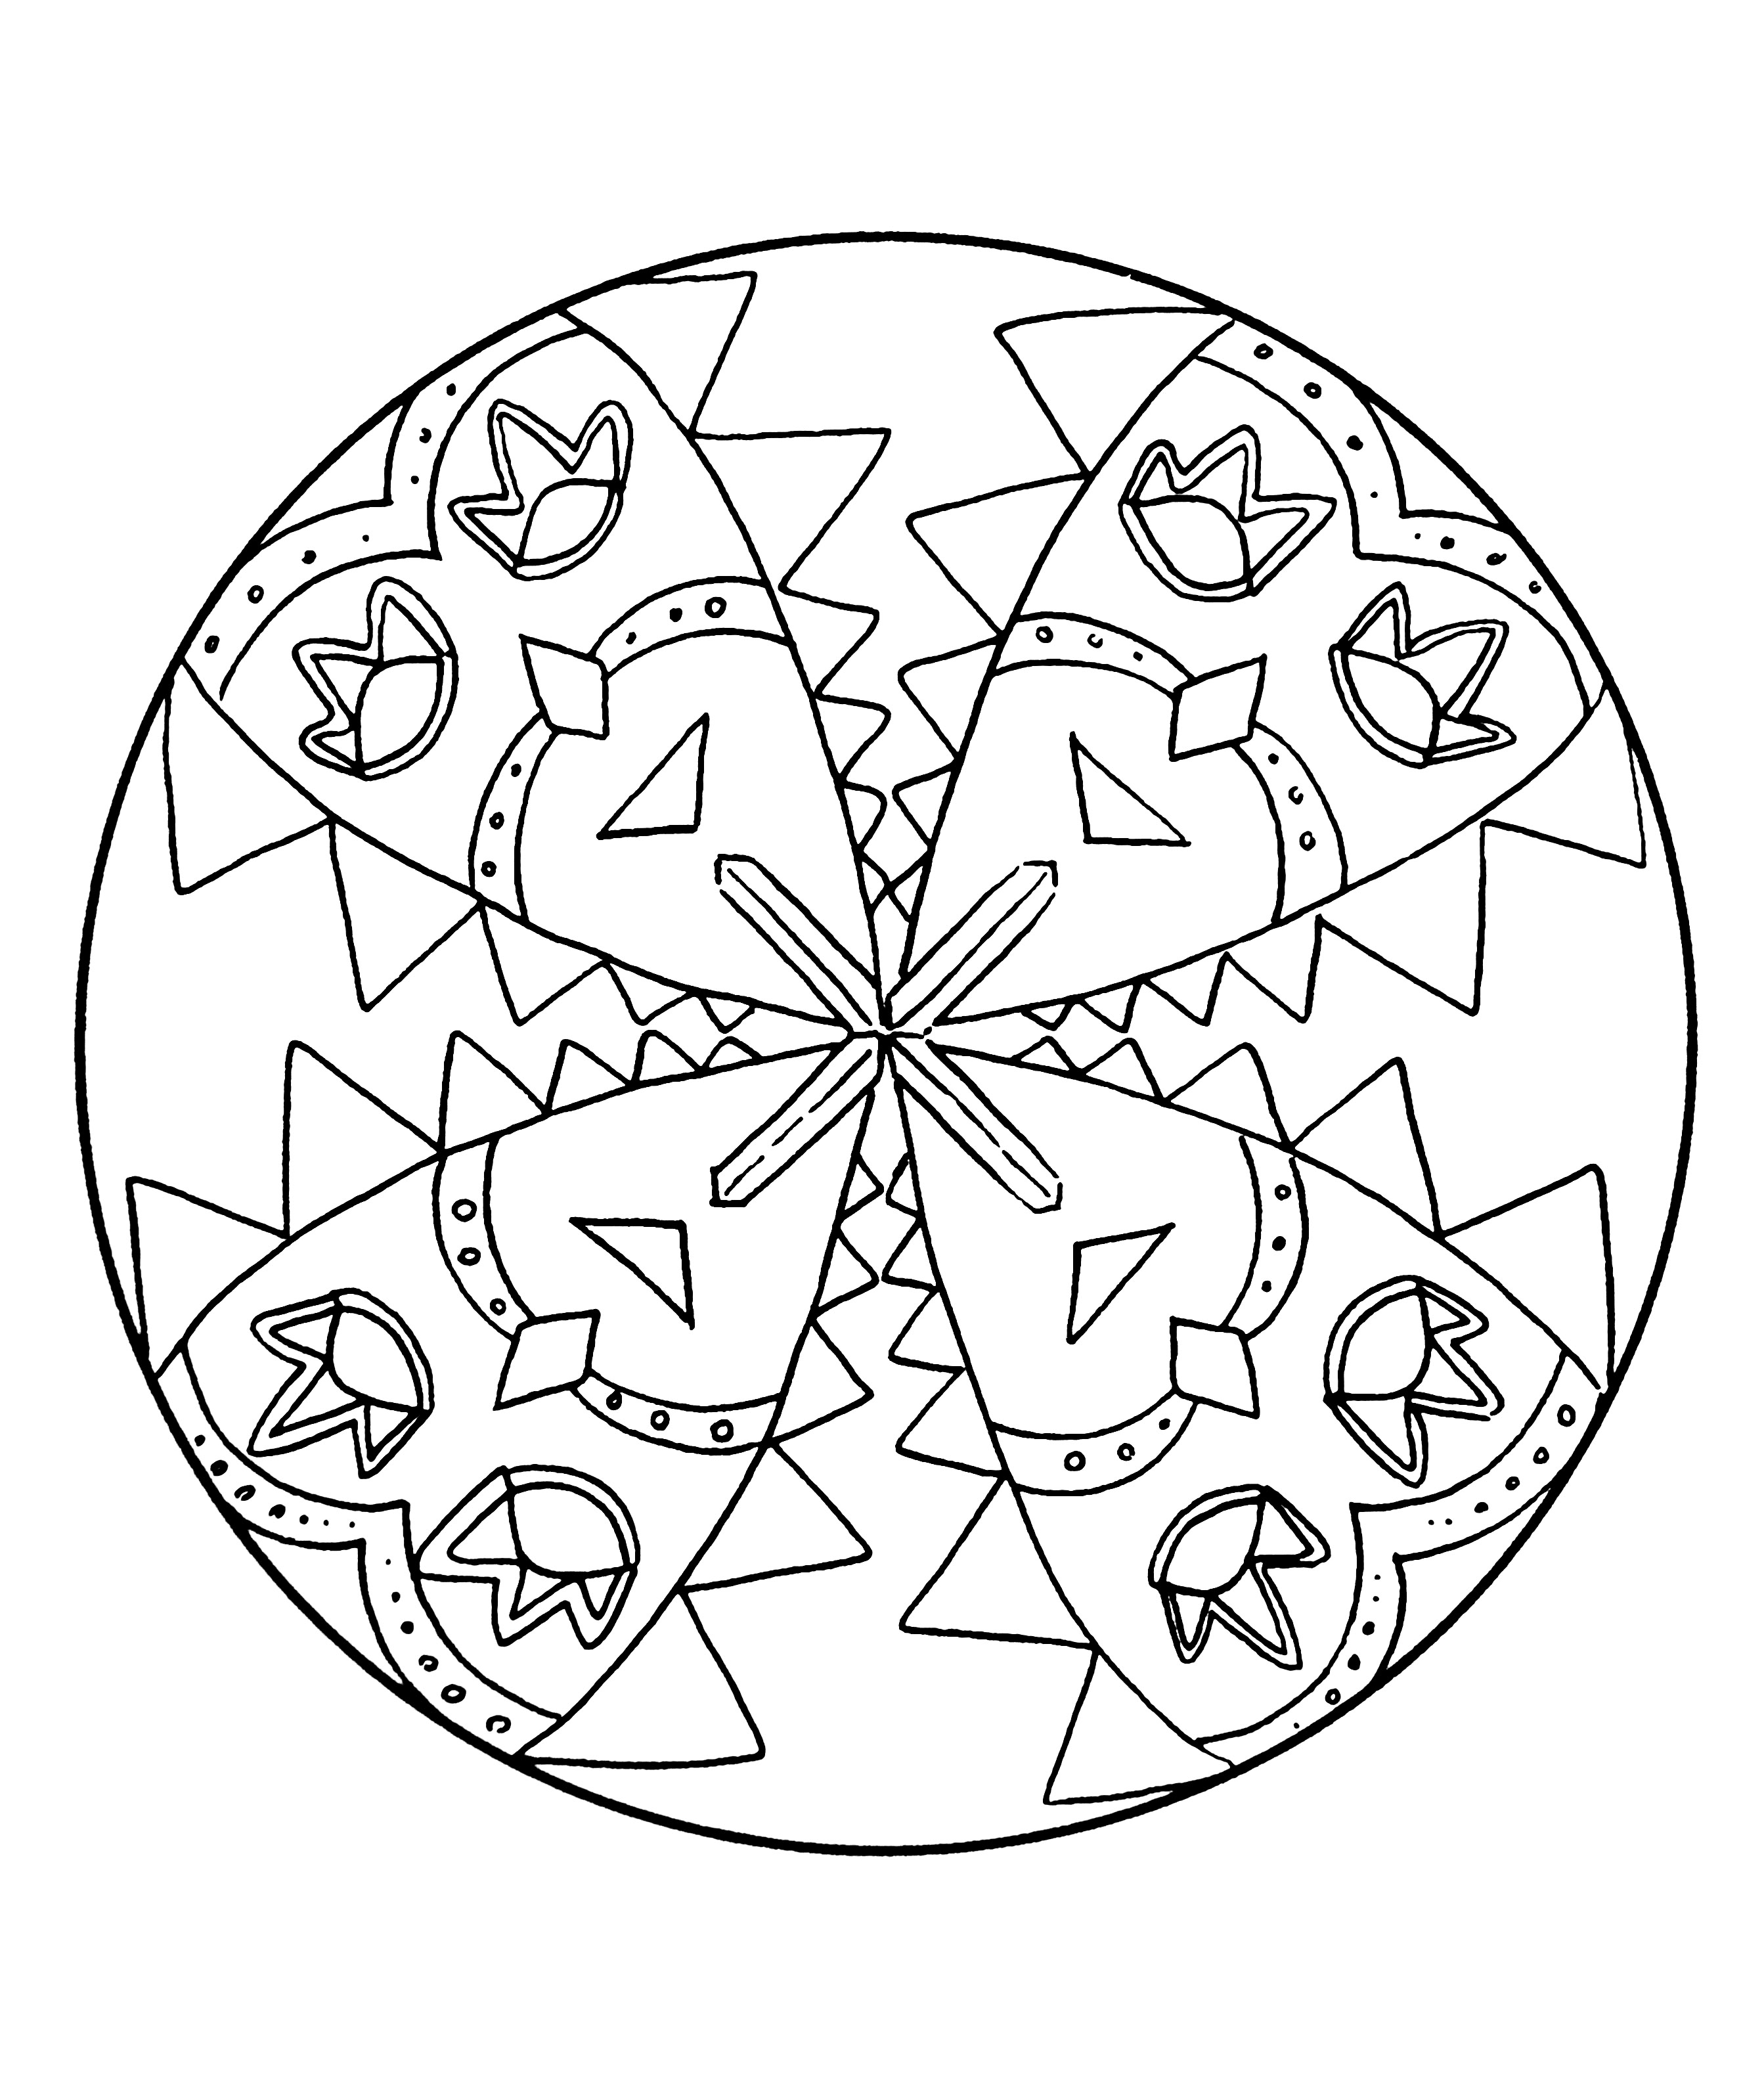 Simple Mandalas coloring page for kids